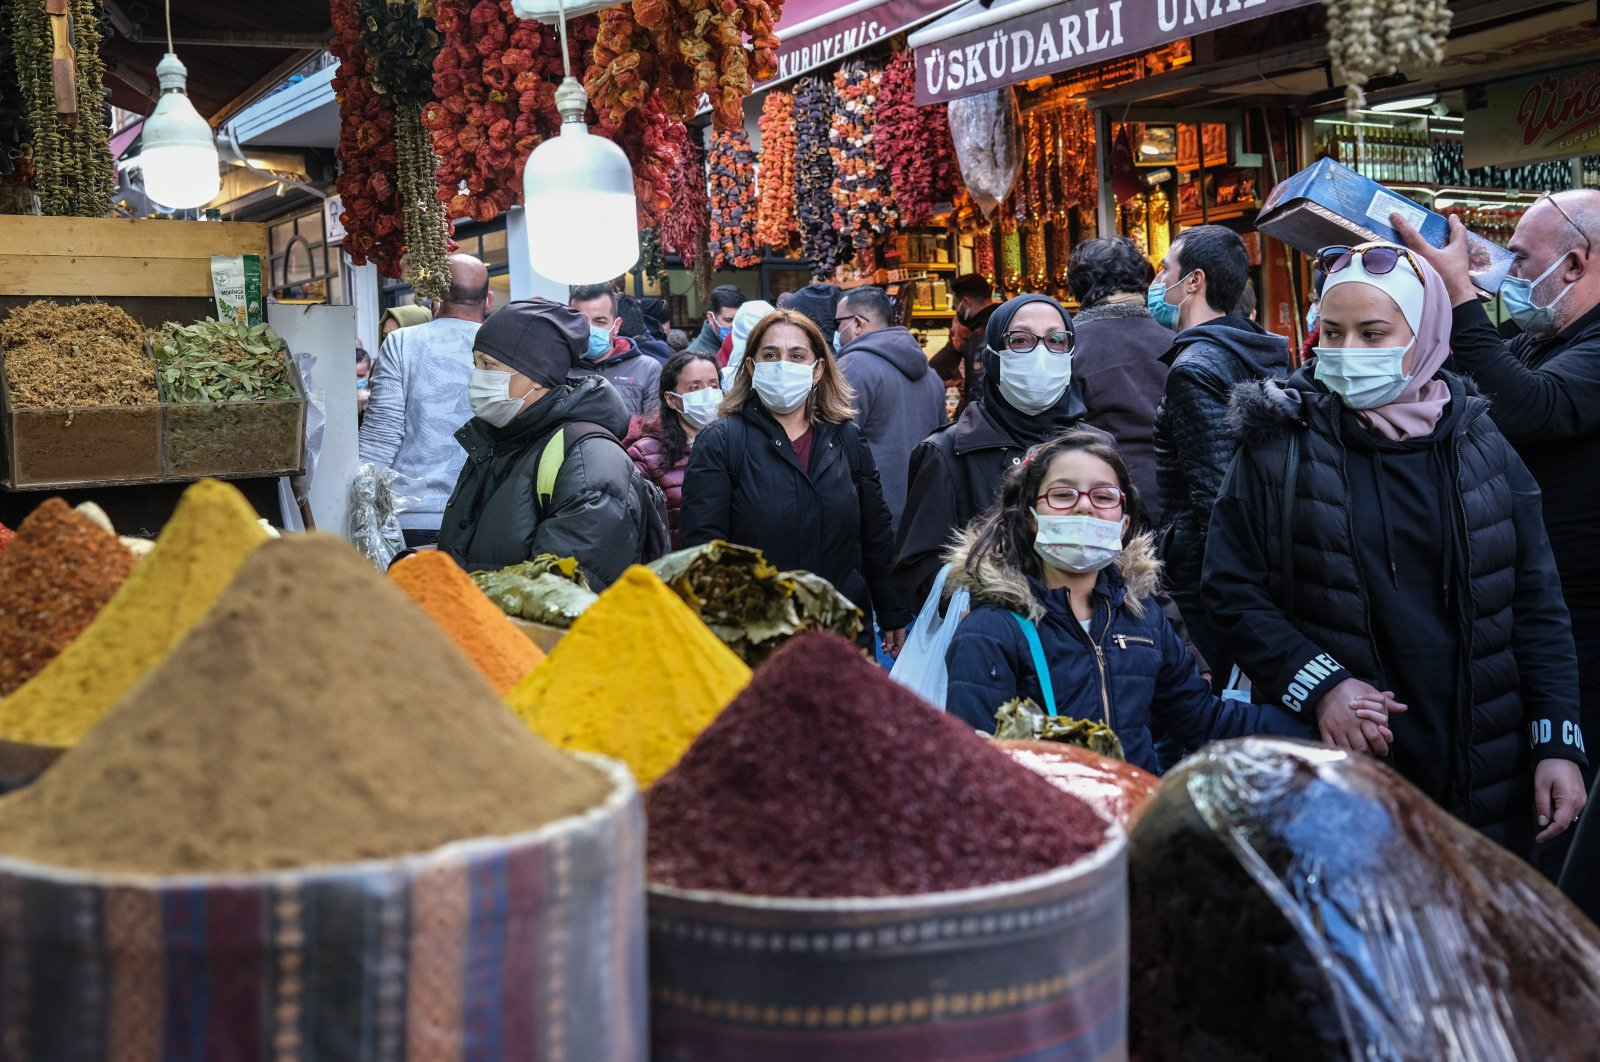 People wearing face masks shop for the upcoming Muslim holy month of Ramadan at the Eminönü local bazaar in Istanbul, Turkey, April 9, 2021. (EPA Photo)